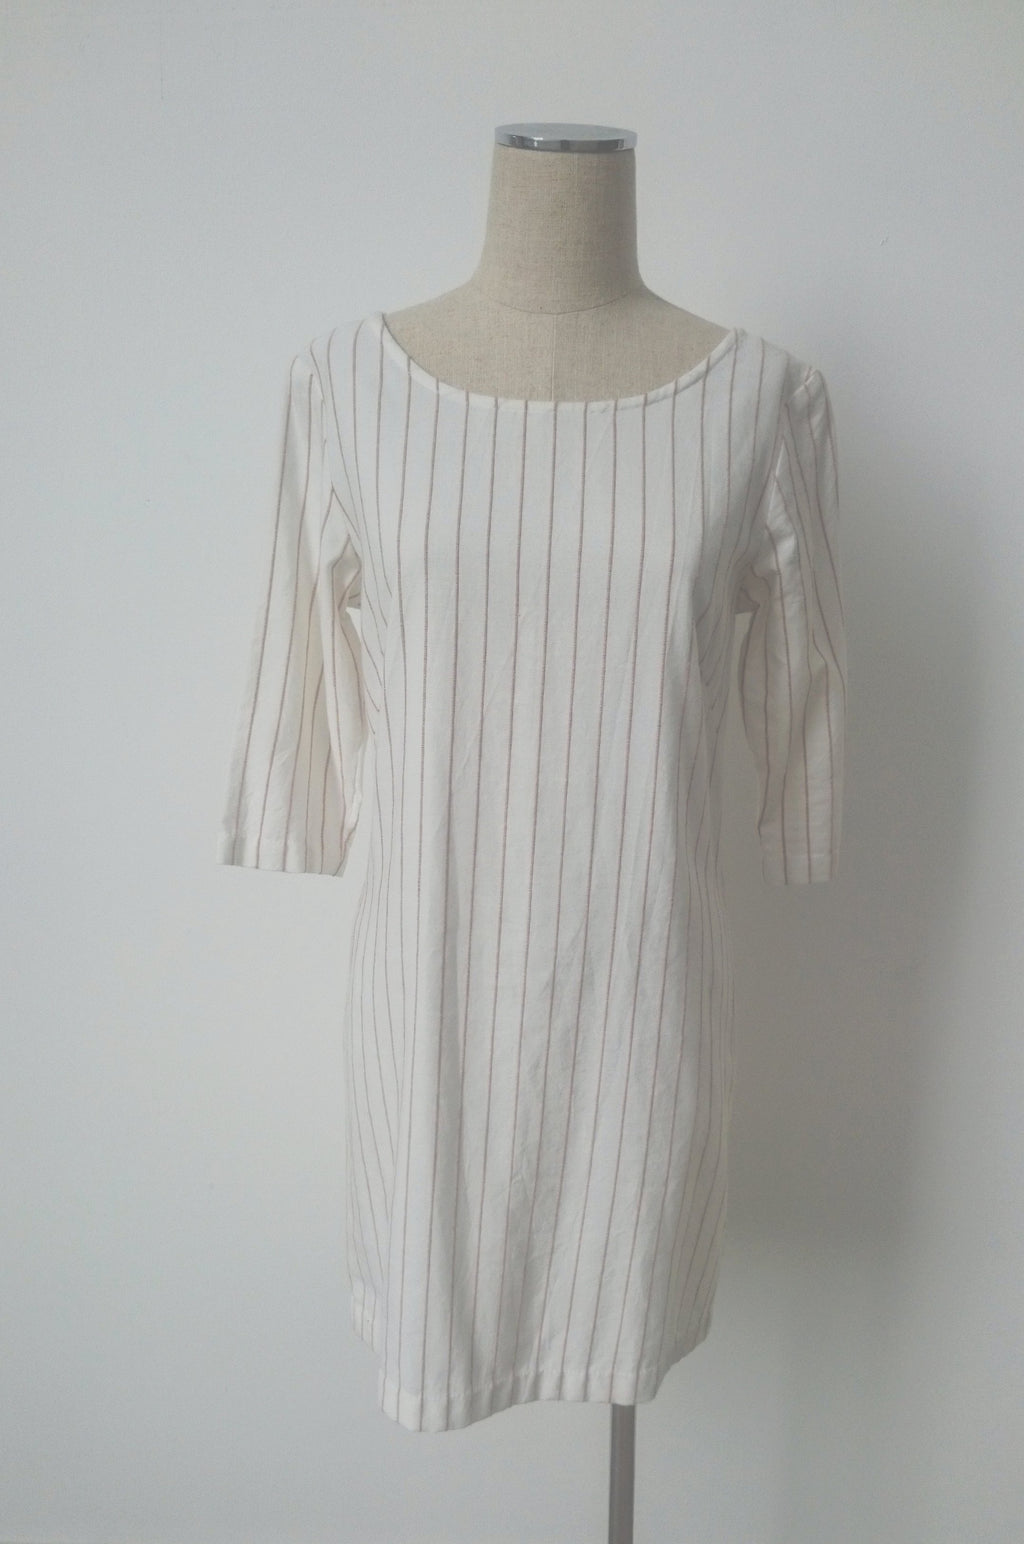 Atacama Dress - Peach Stripe - Handwoven Cotton Ikat